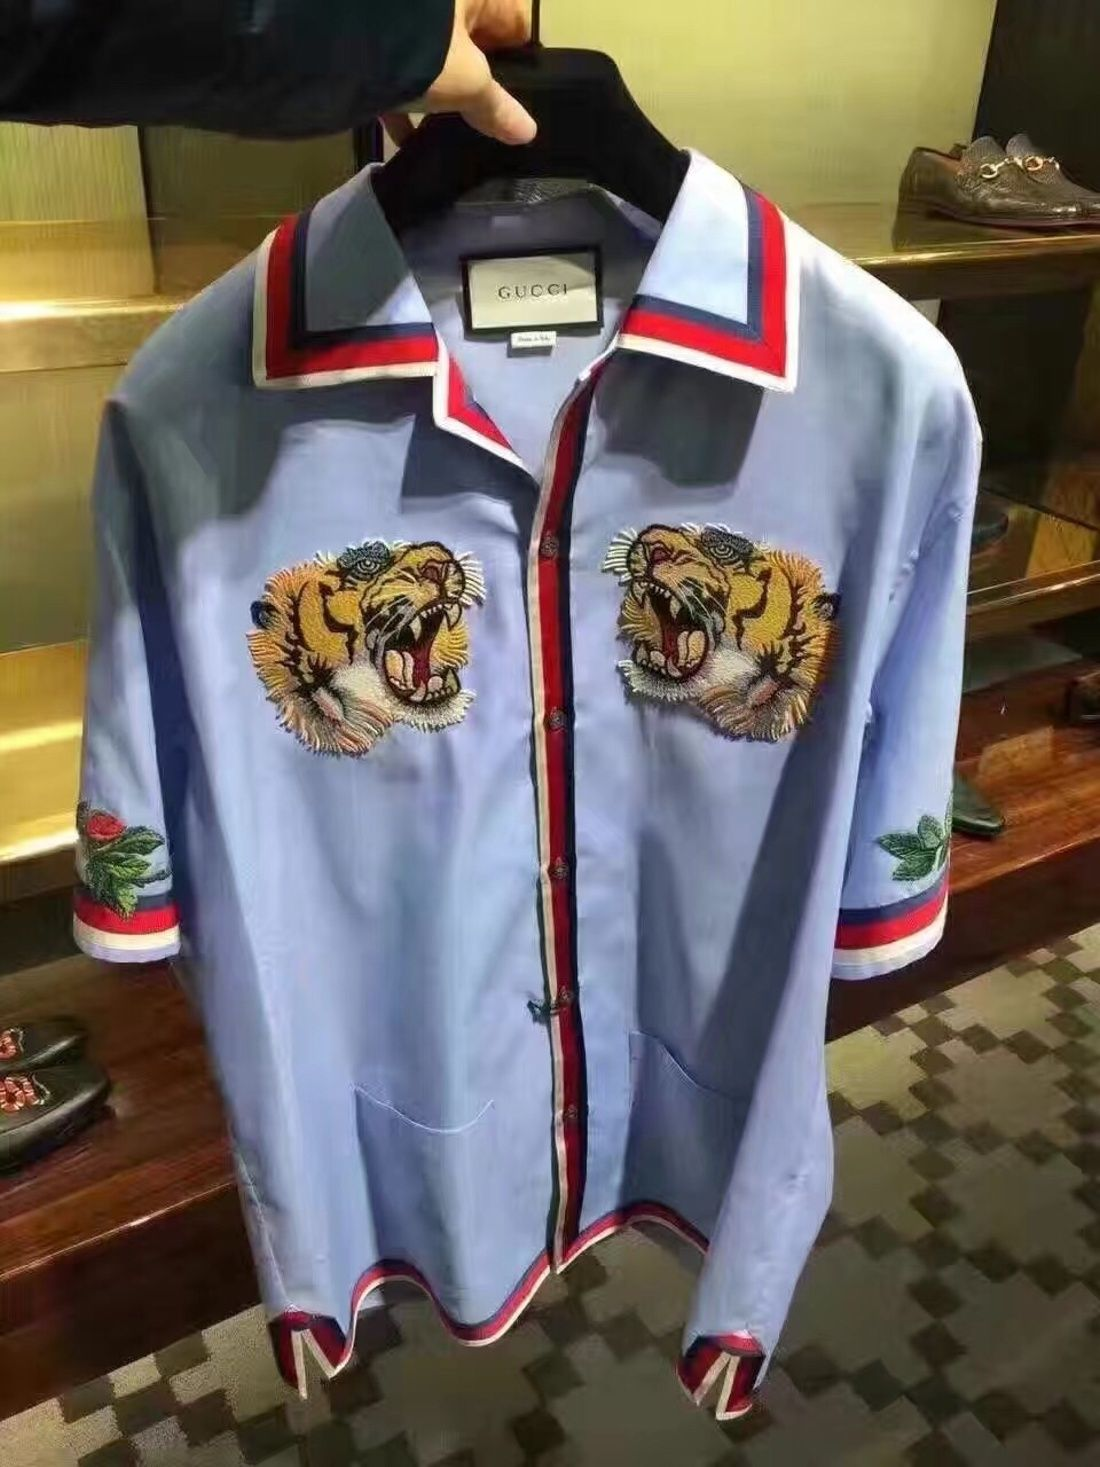 e8ae7051ce6 Gucci Gucci Oxford Bowling Shirt With Tiger Embroidery